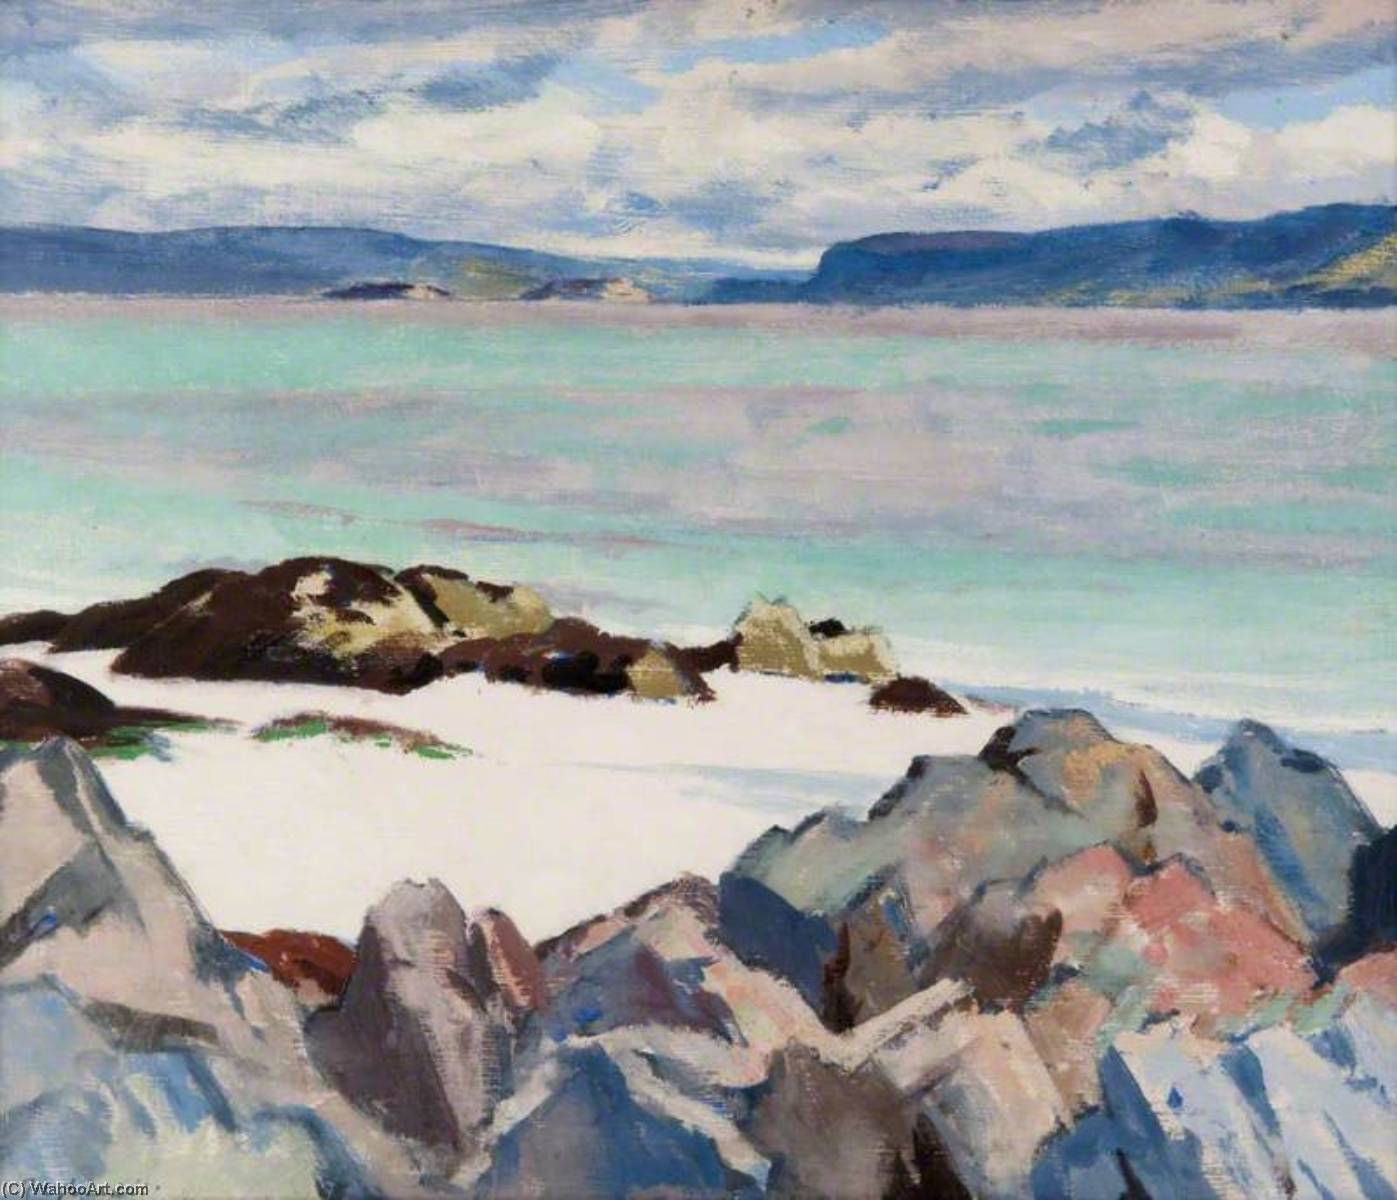 See n / a Keal, 1923 von Francis Campbell Boileau Cadell (1883-1937) | WahooArt.com